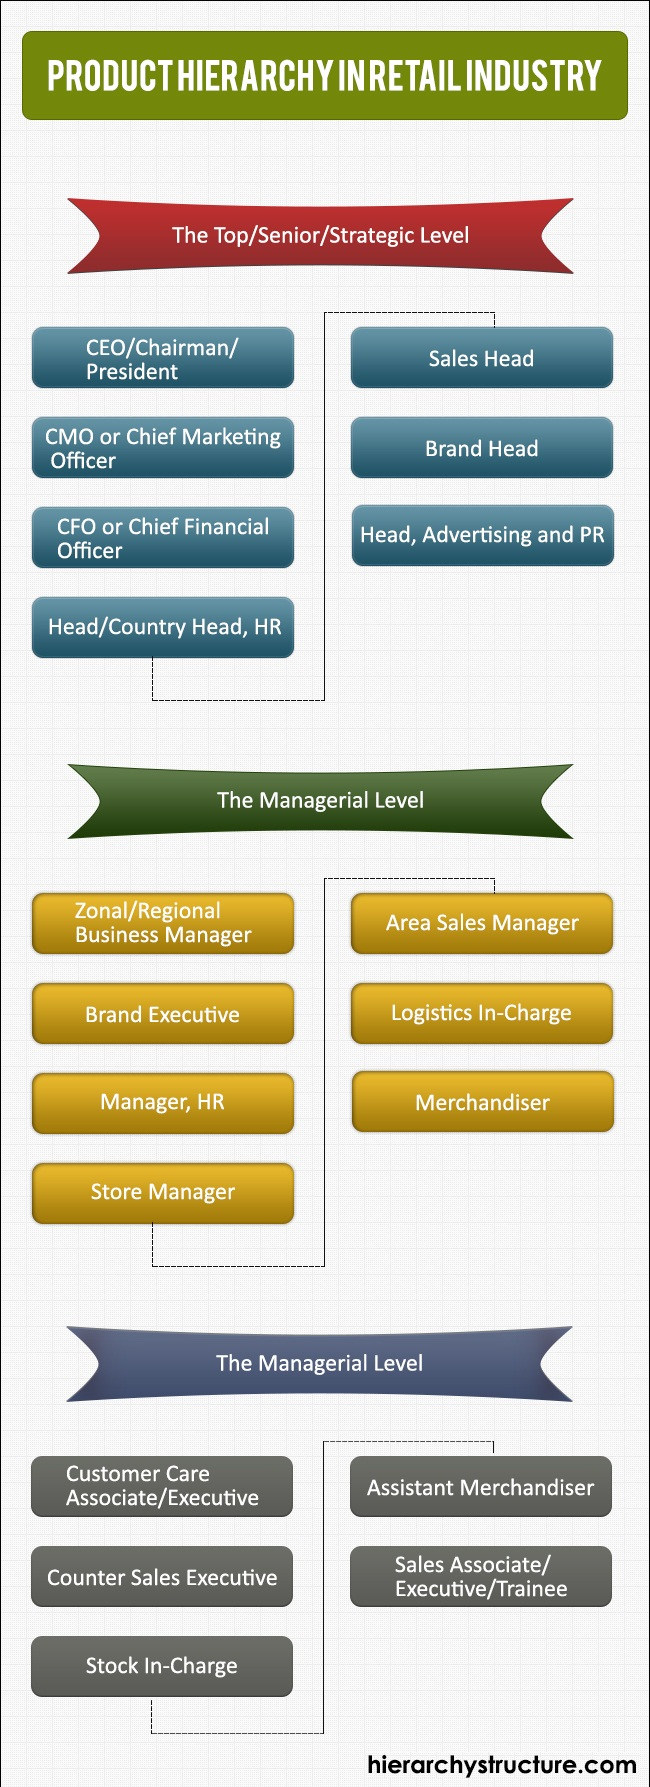 Product Hierarchy in Retail Industry